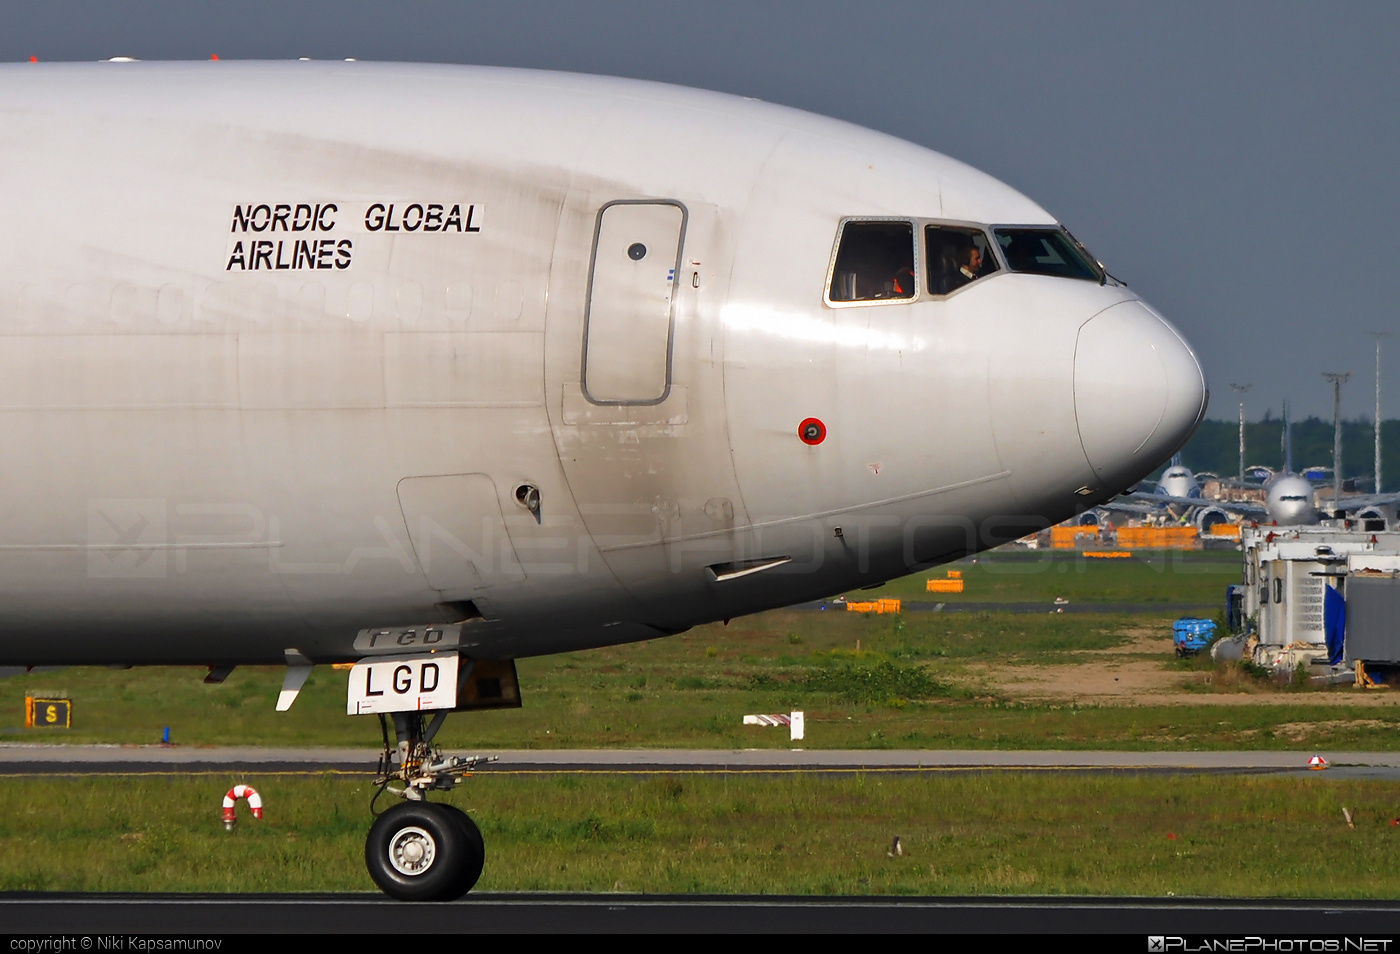 Nordic Global Airlines McDonnell Douglas MD-11F - OH-LGD